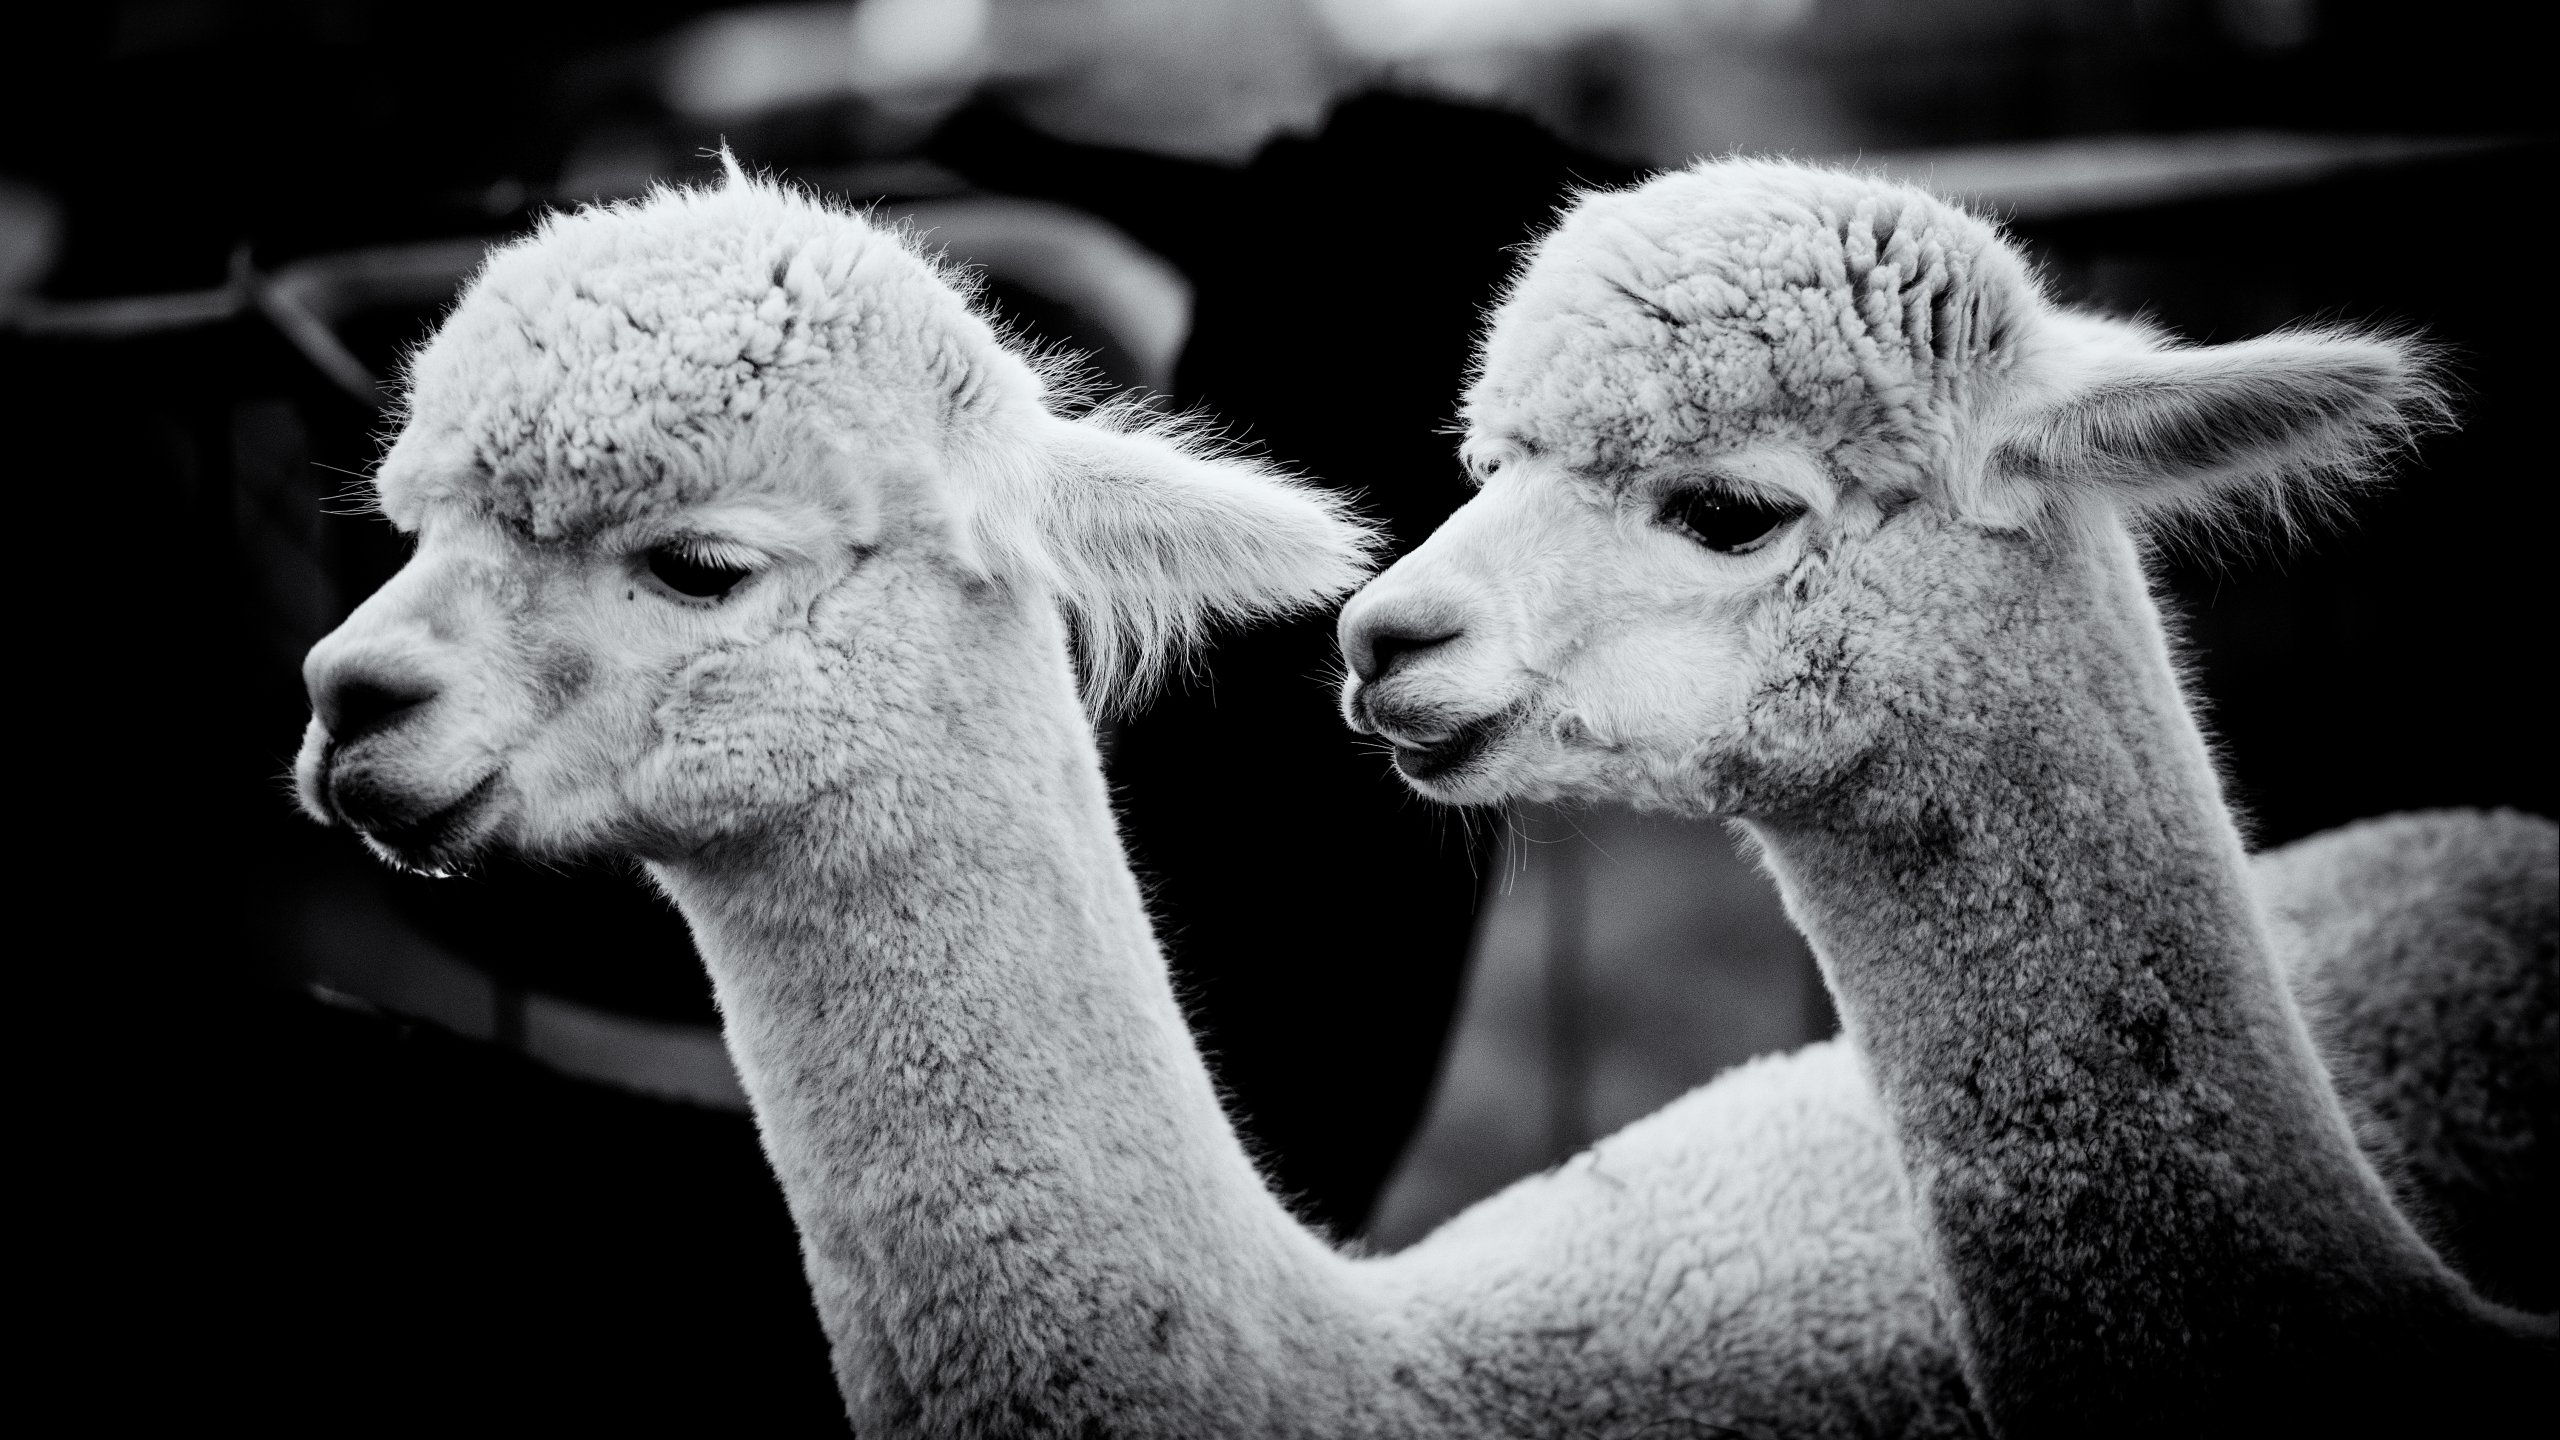 Awesome Alpaca free wallpaper ID:127001 for hd 2560x1440 desktop